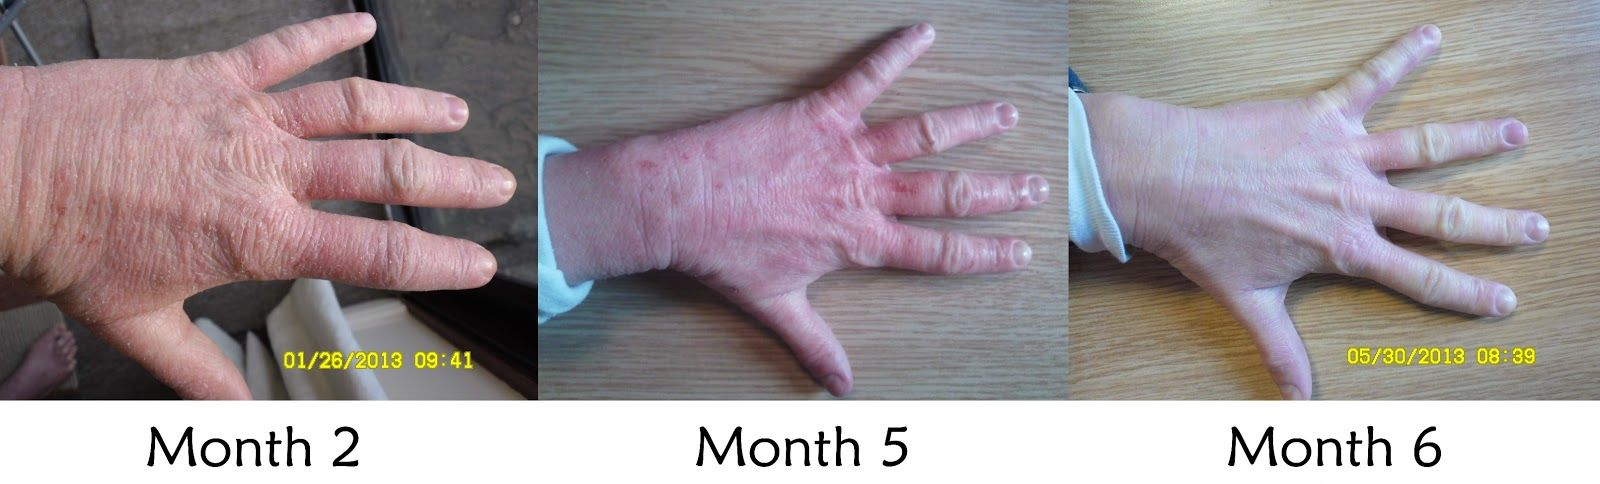 Pin On Red Skin Syndrome